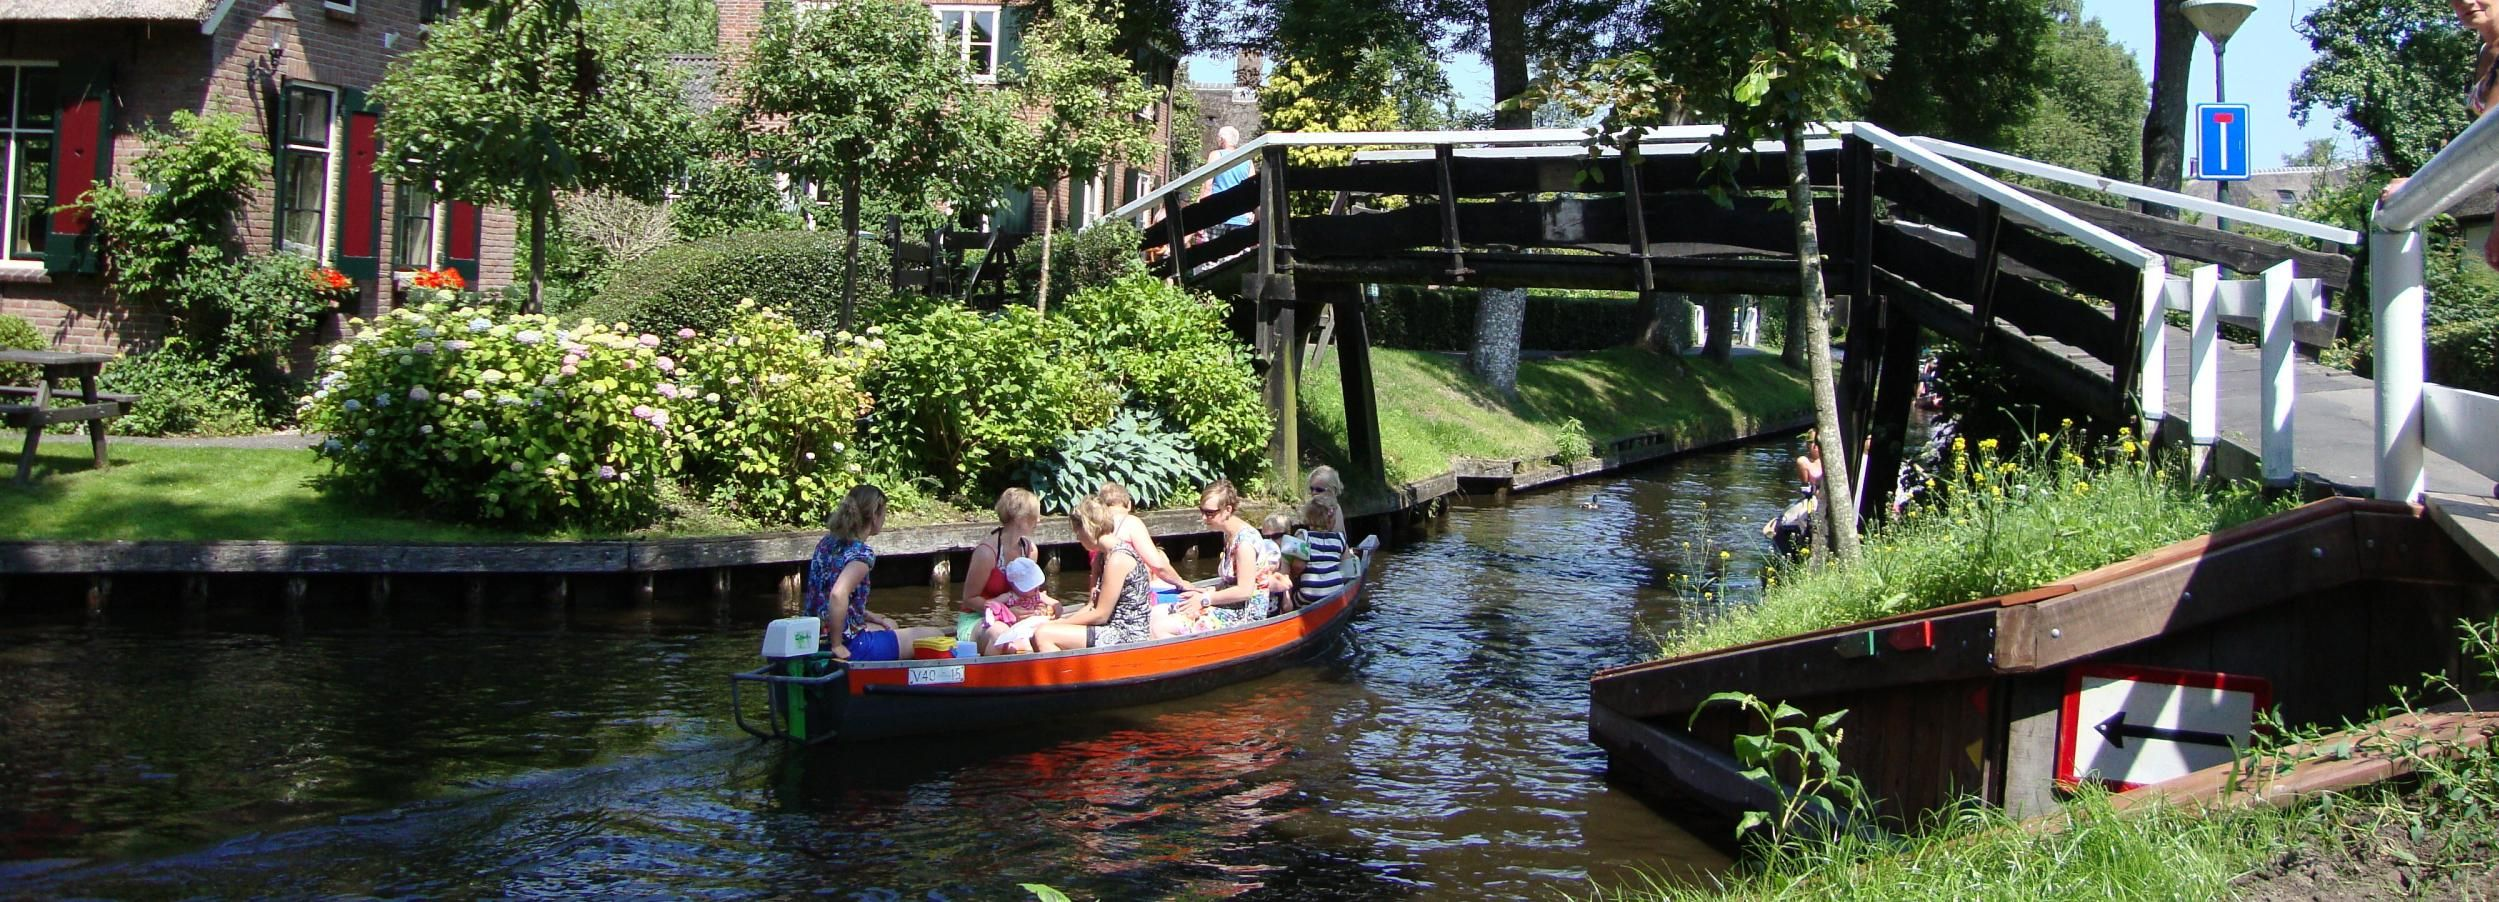 From Amsterdam: Day Trip to Giethoorn and Schokland